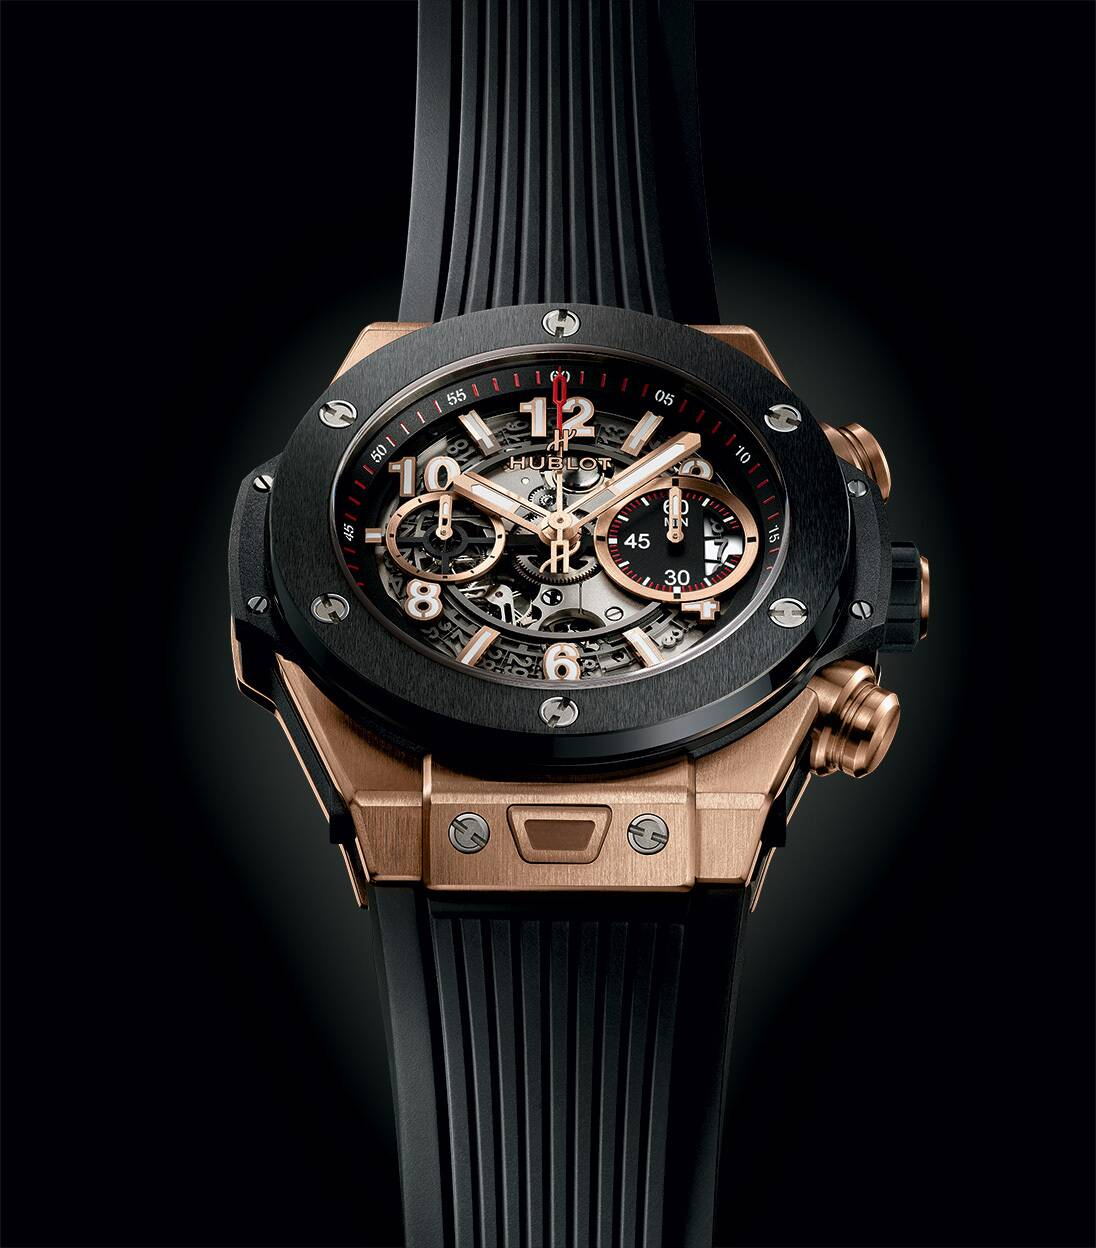 Hublot watchmaking savoir faire watches amp jewelry lvmh